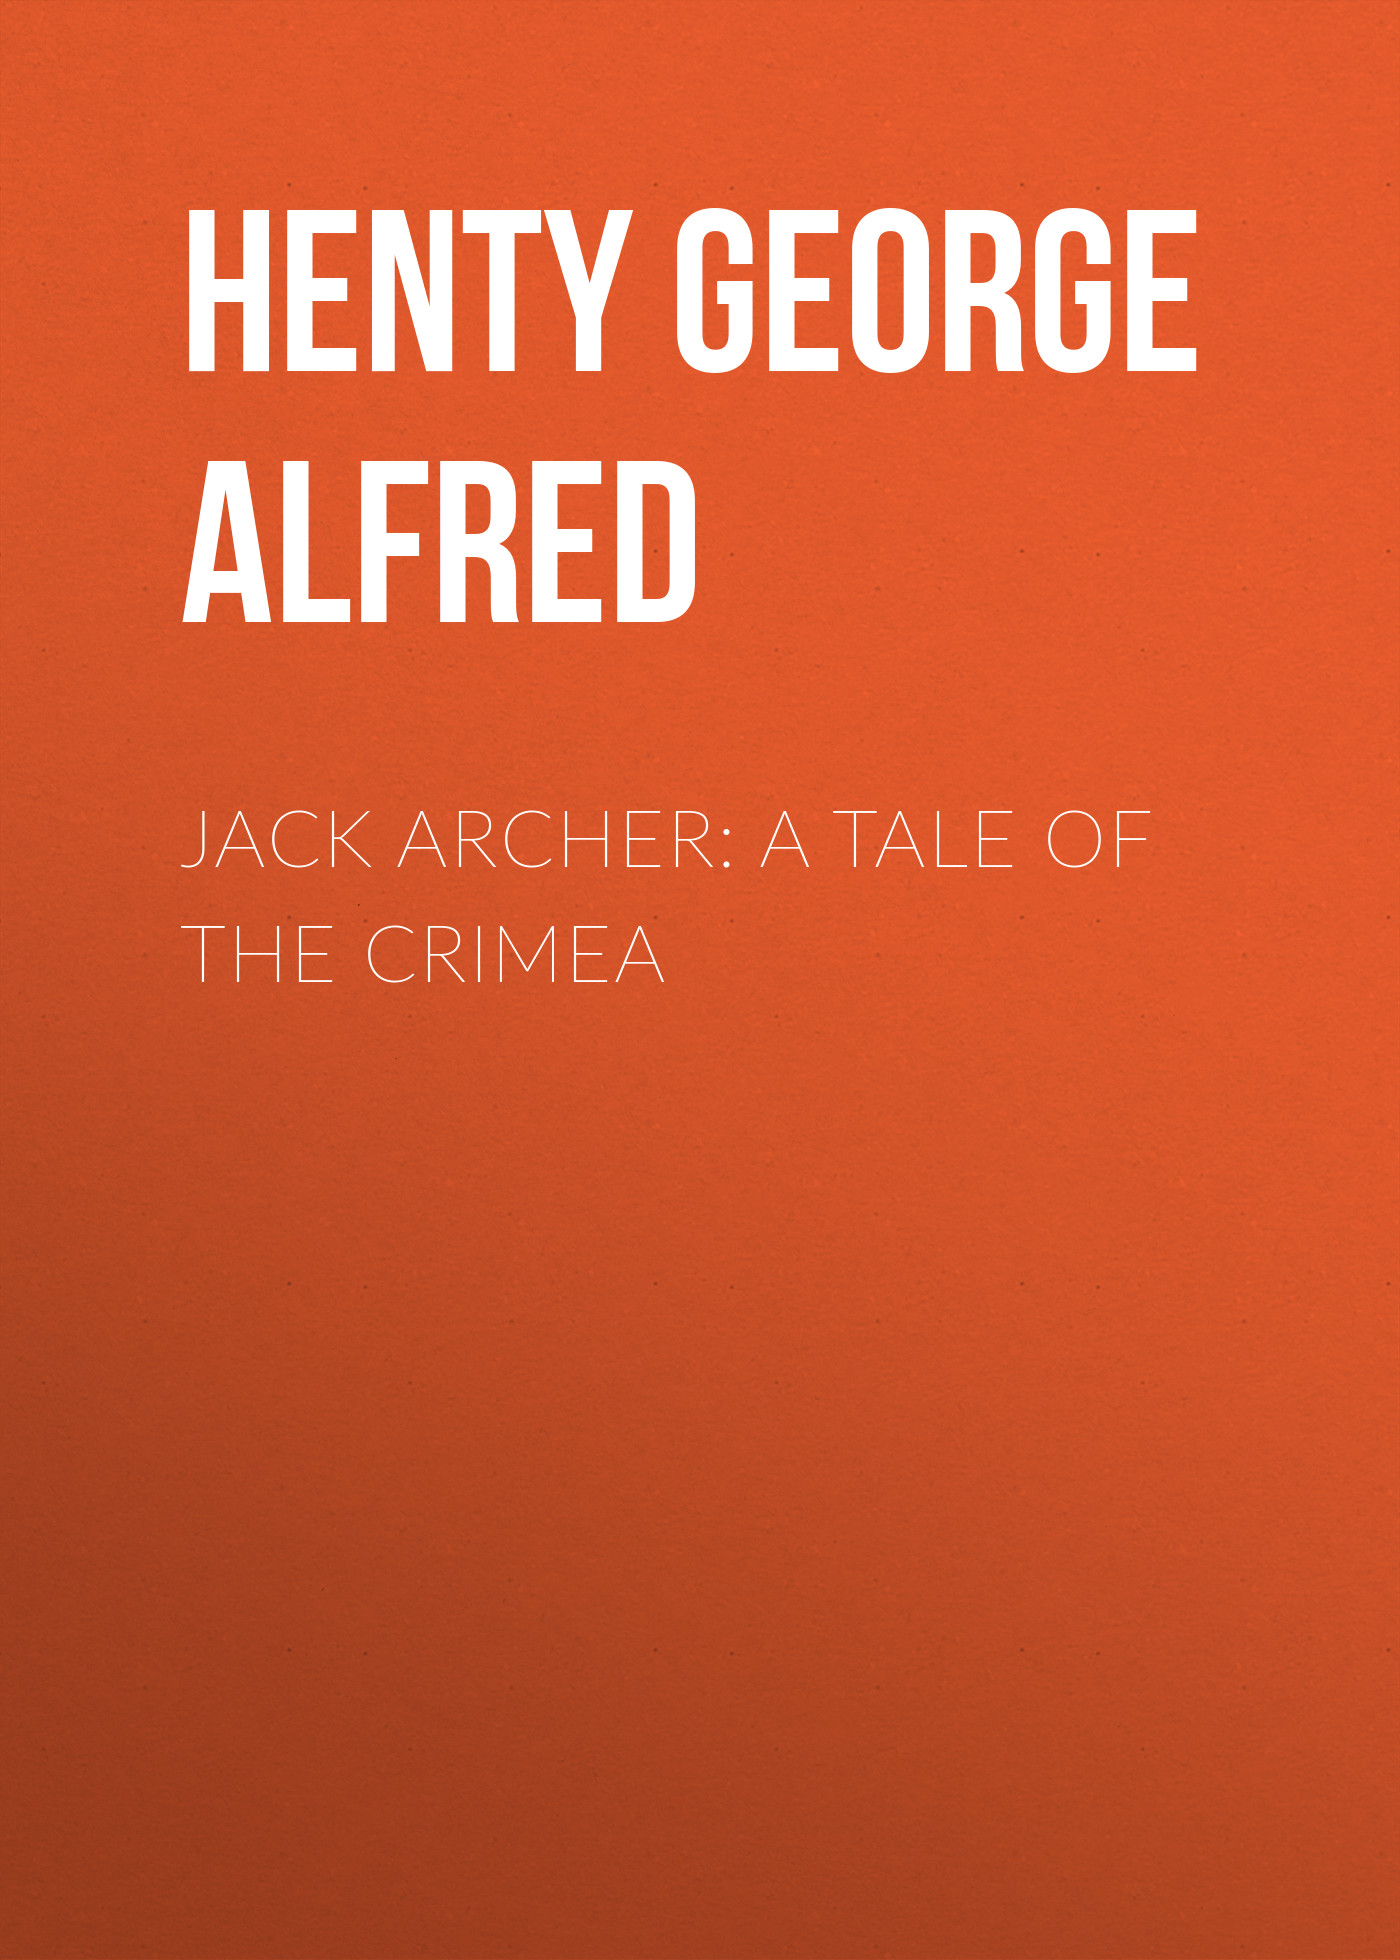 Henty George Alfred Jack Archer: A Tale of the Crimea henty george alfred the curse of carne s hold a tale of adventure